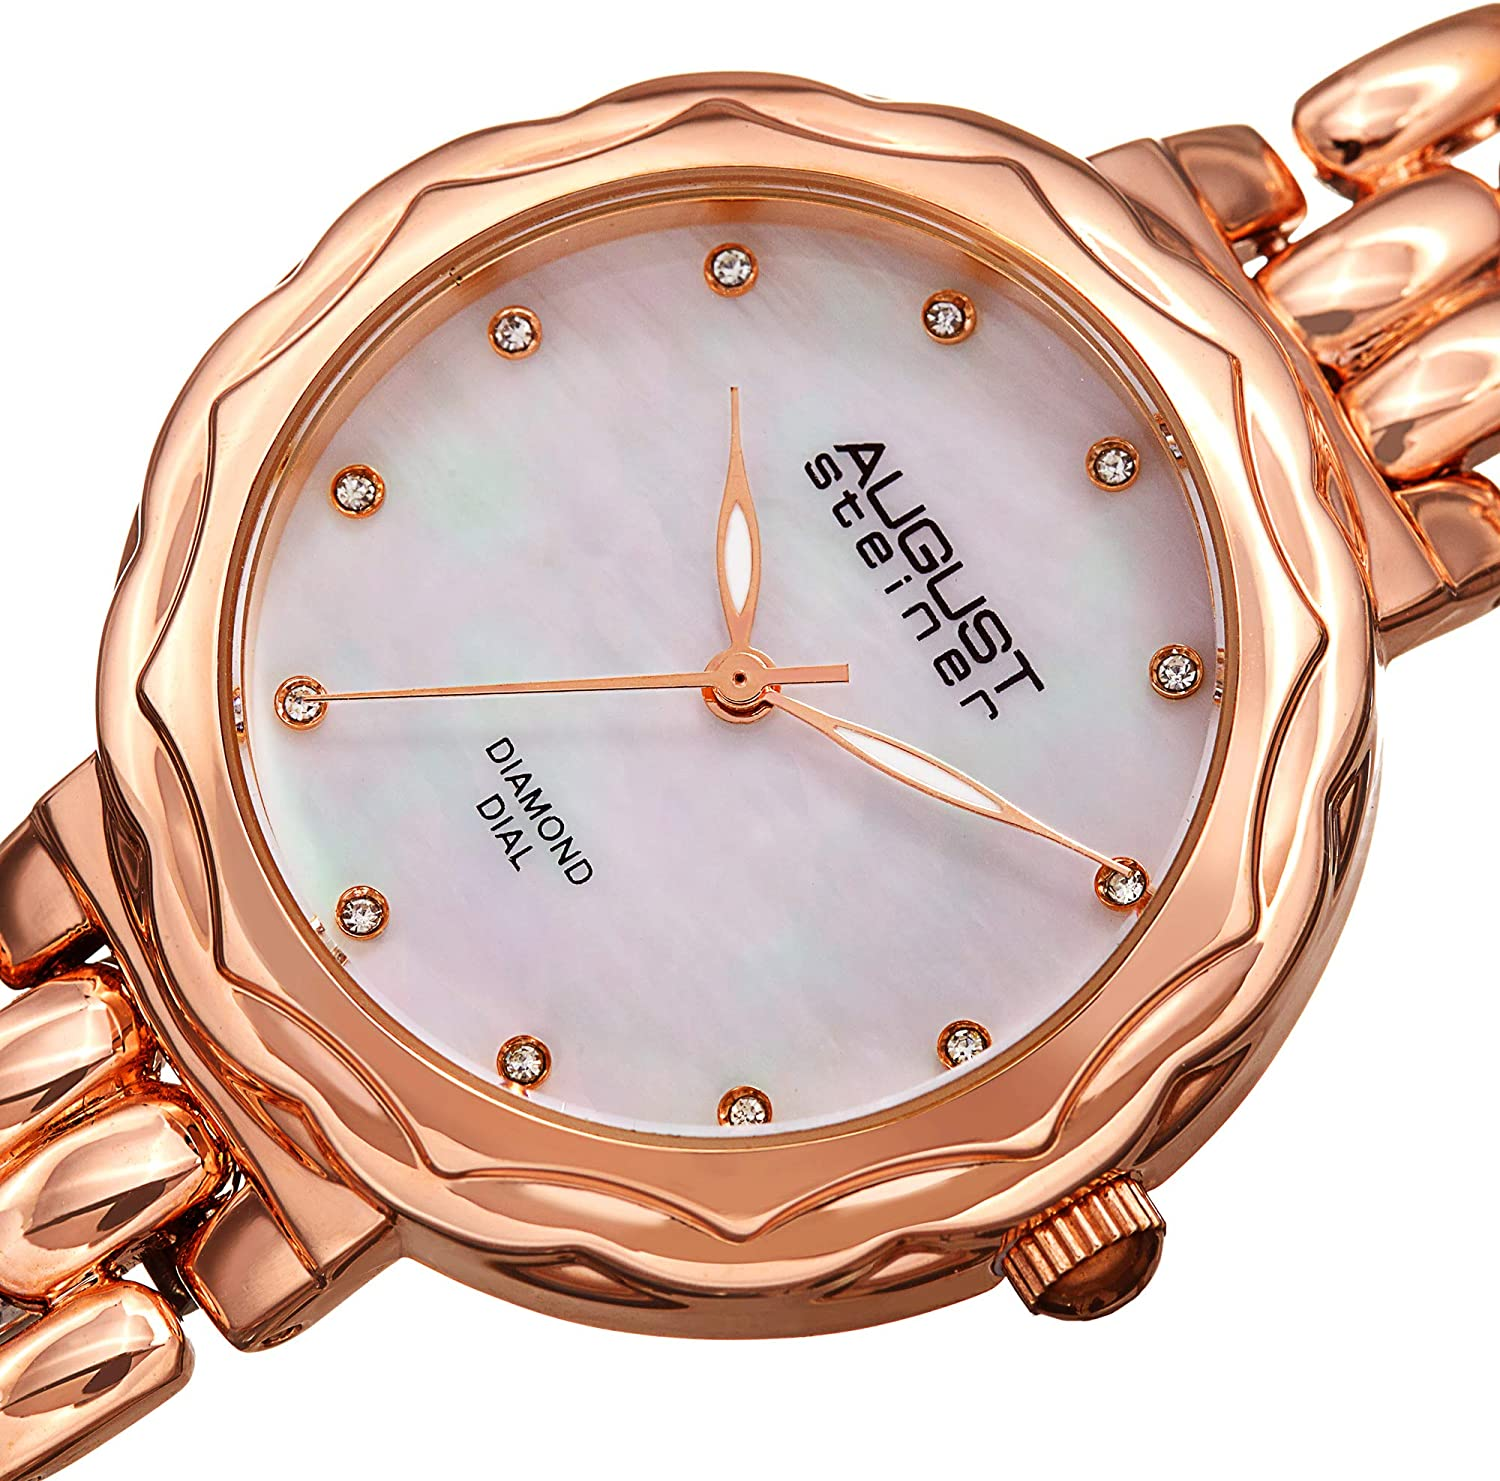 August Steiner AS8248 Diamond Women's Watch – Designer Stainless Steel Bracelet Band – Mother Diamonds Rose Gold Tone